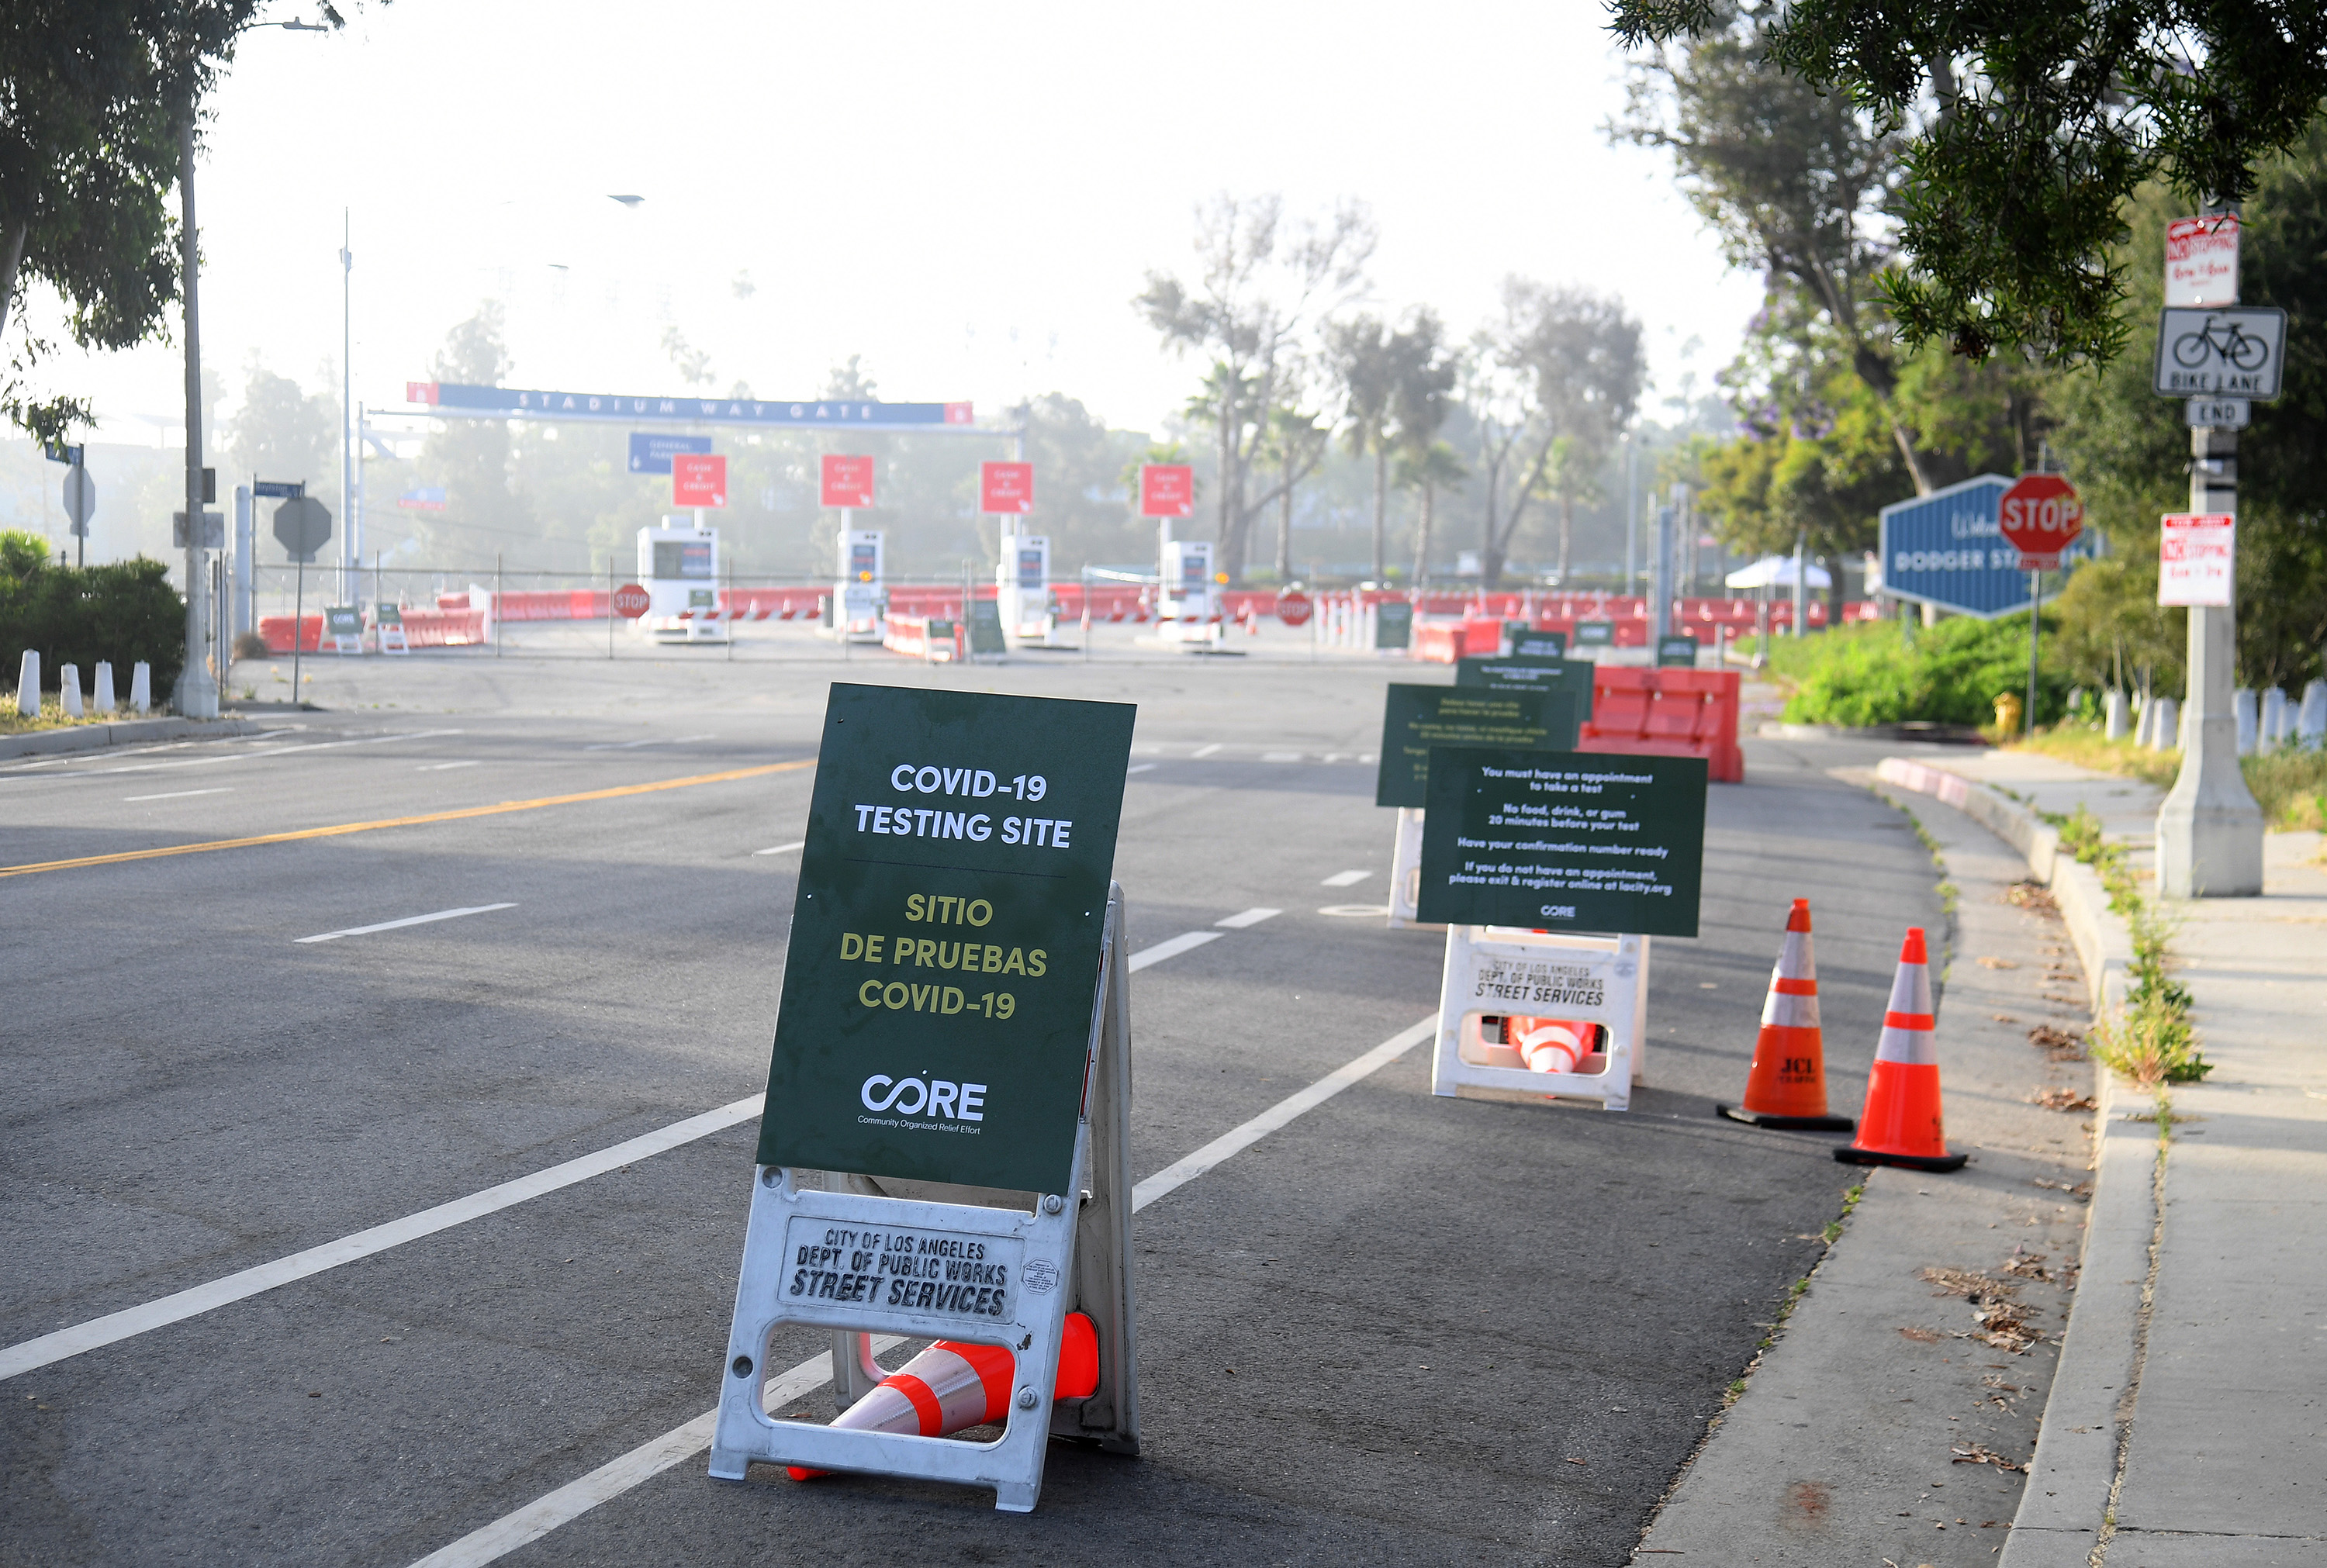 Drive Thru Coronavirus Testing Opens At Dodger Stadium In Los Angeles Mit Technology Review